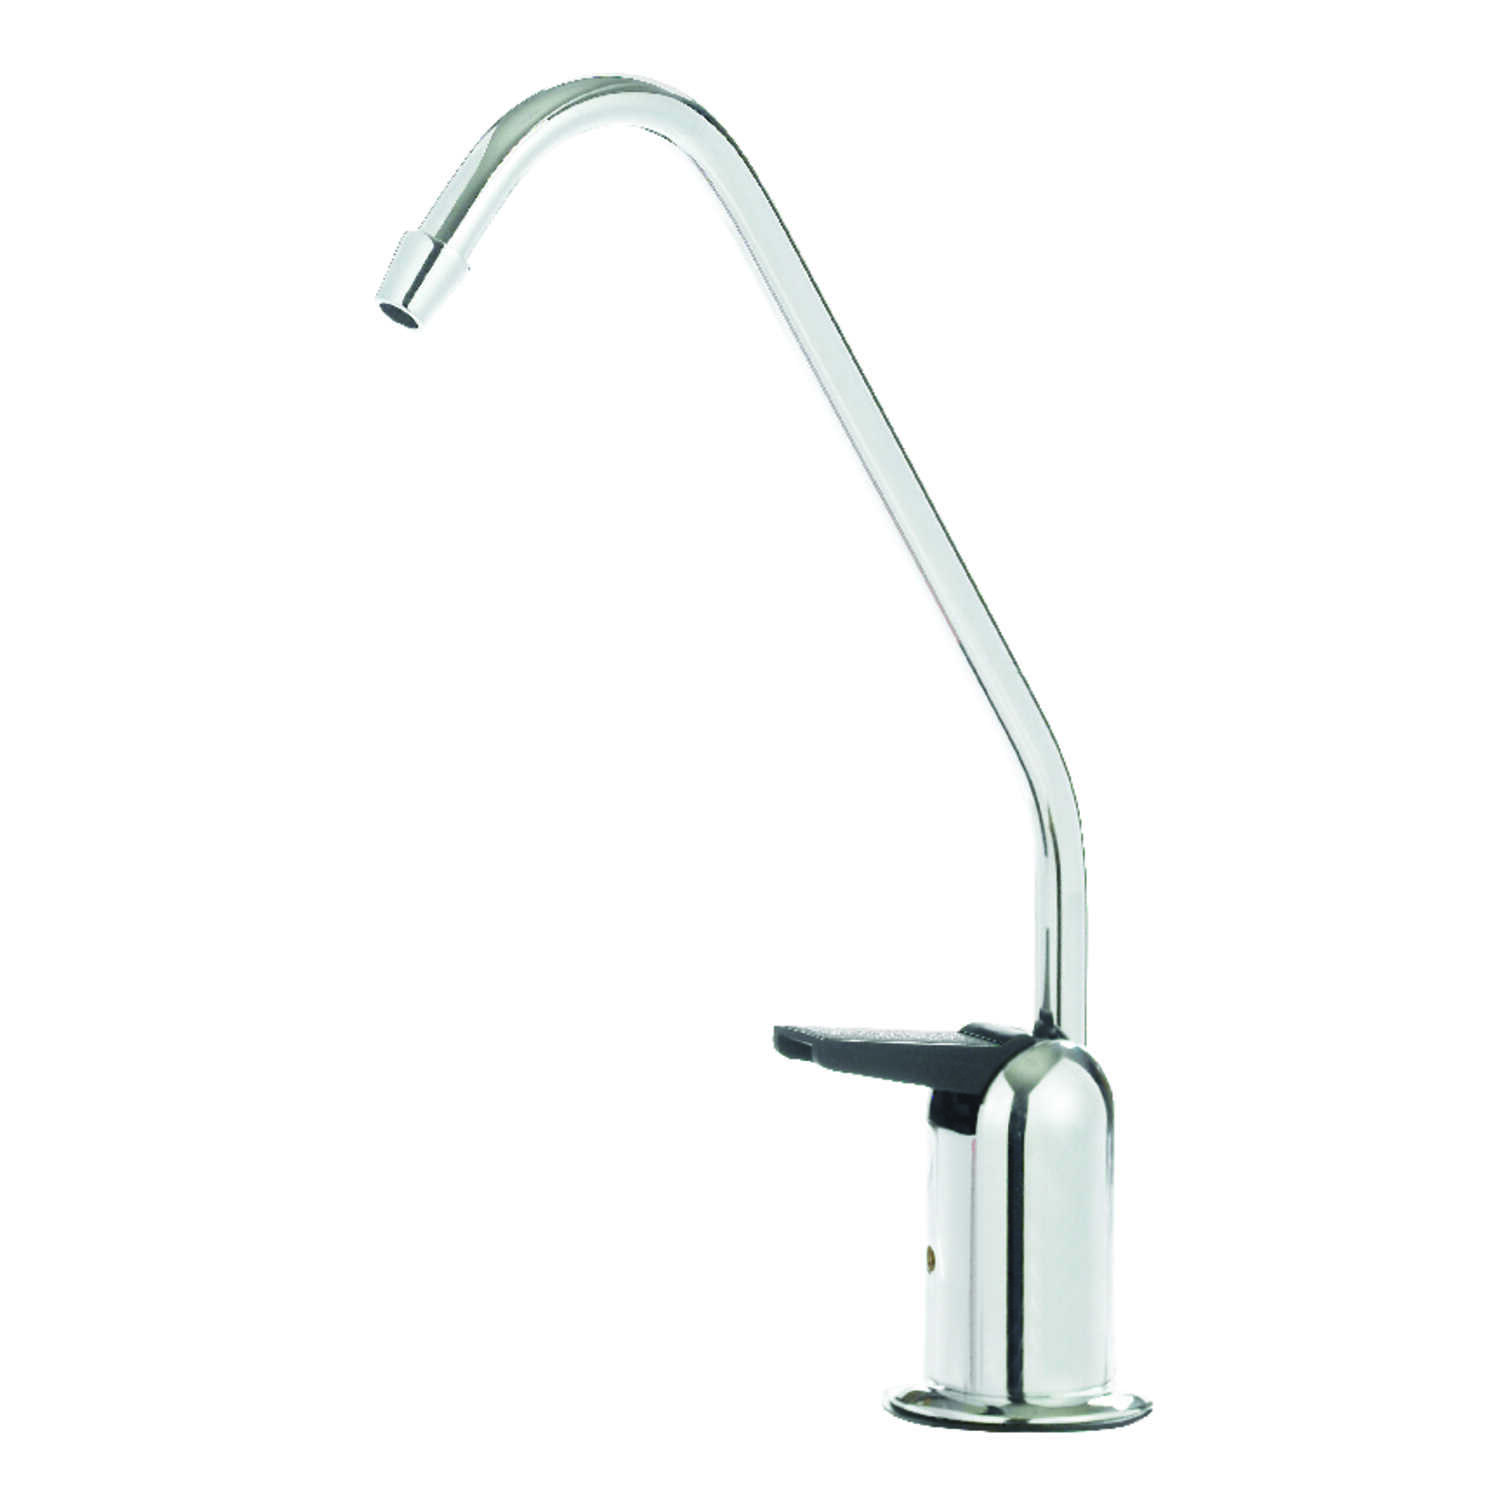 Watts  Air Gap  One Handle  Chrome  Kitchen Faucet